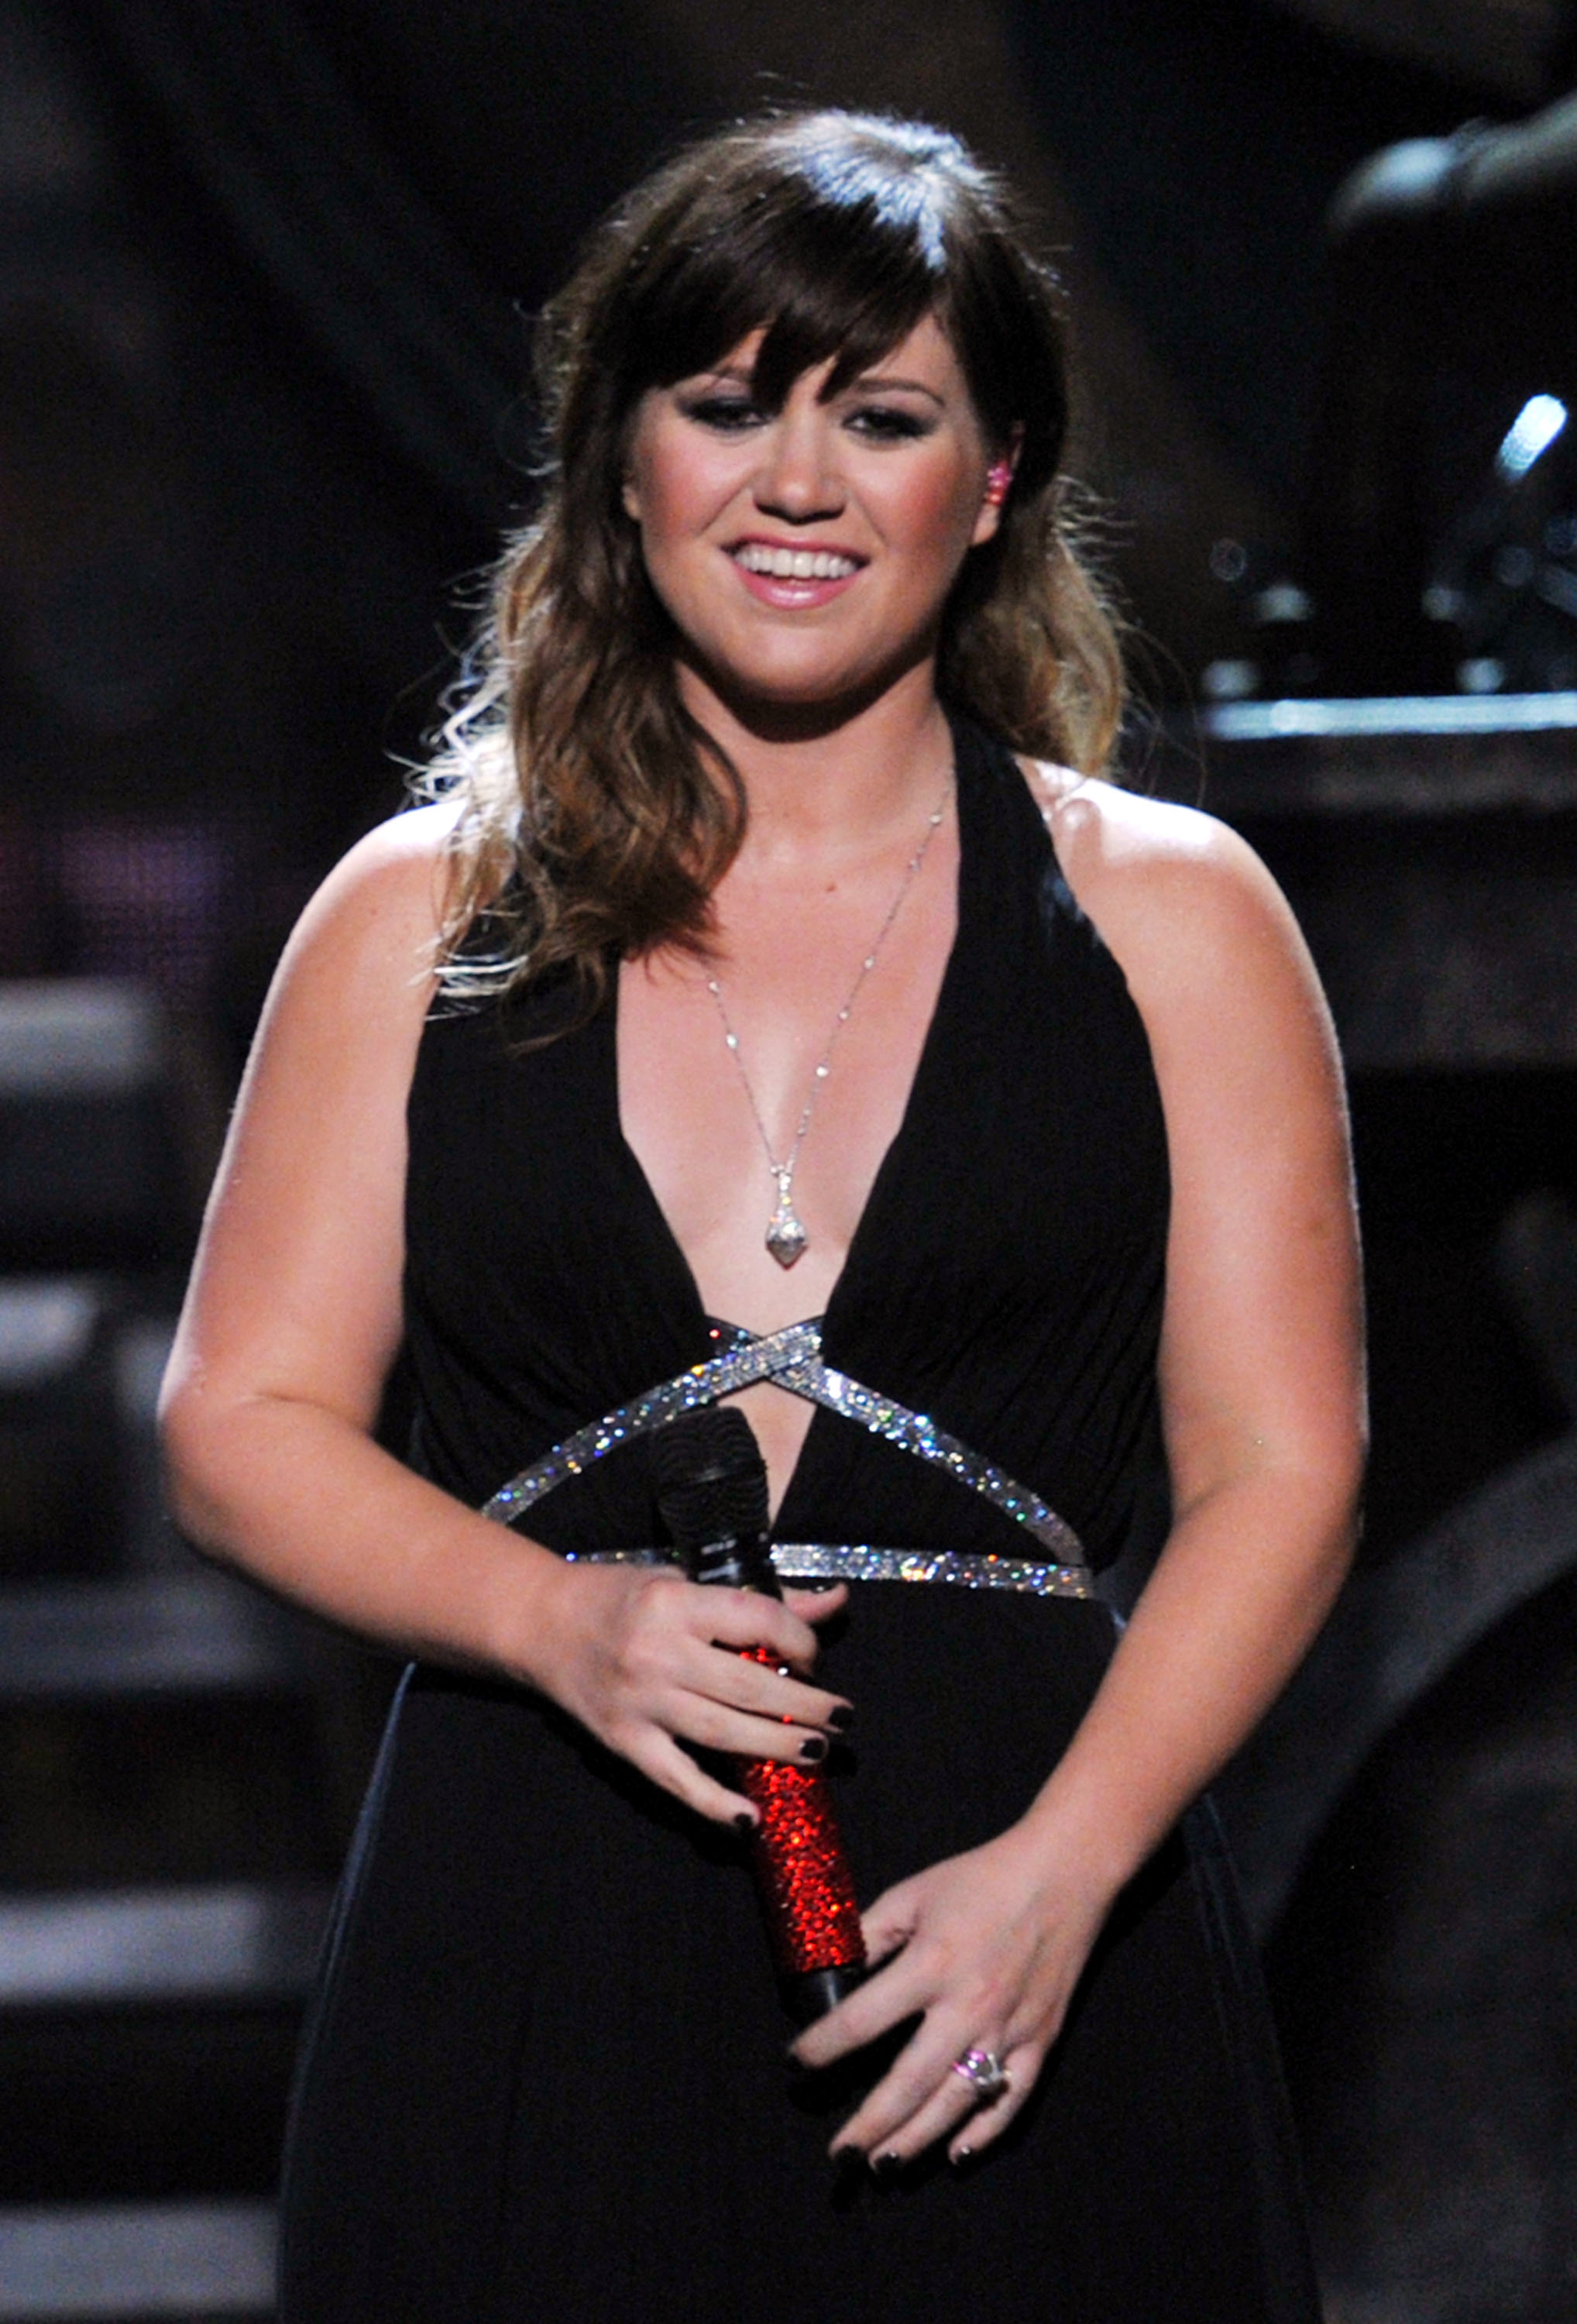 Kelly Clarkson was one of the many performers of the night.